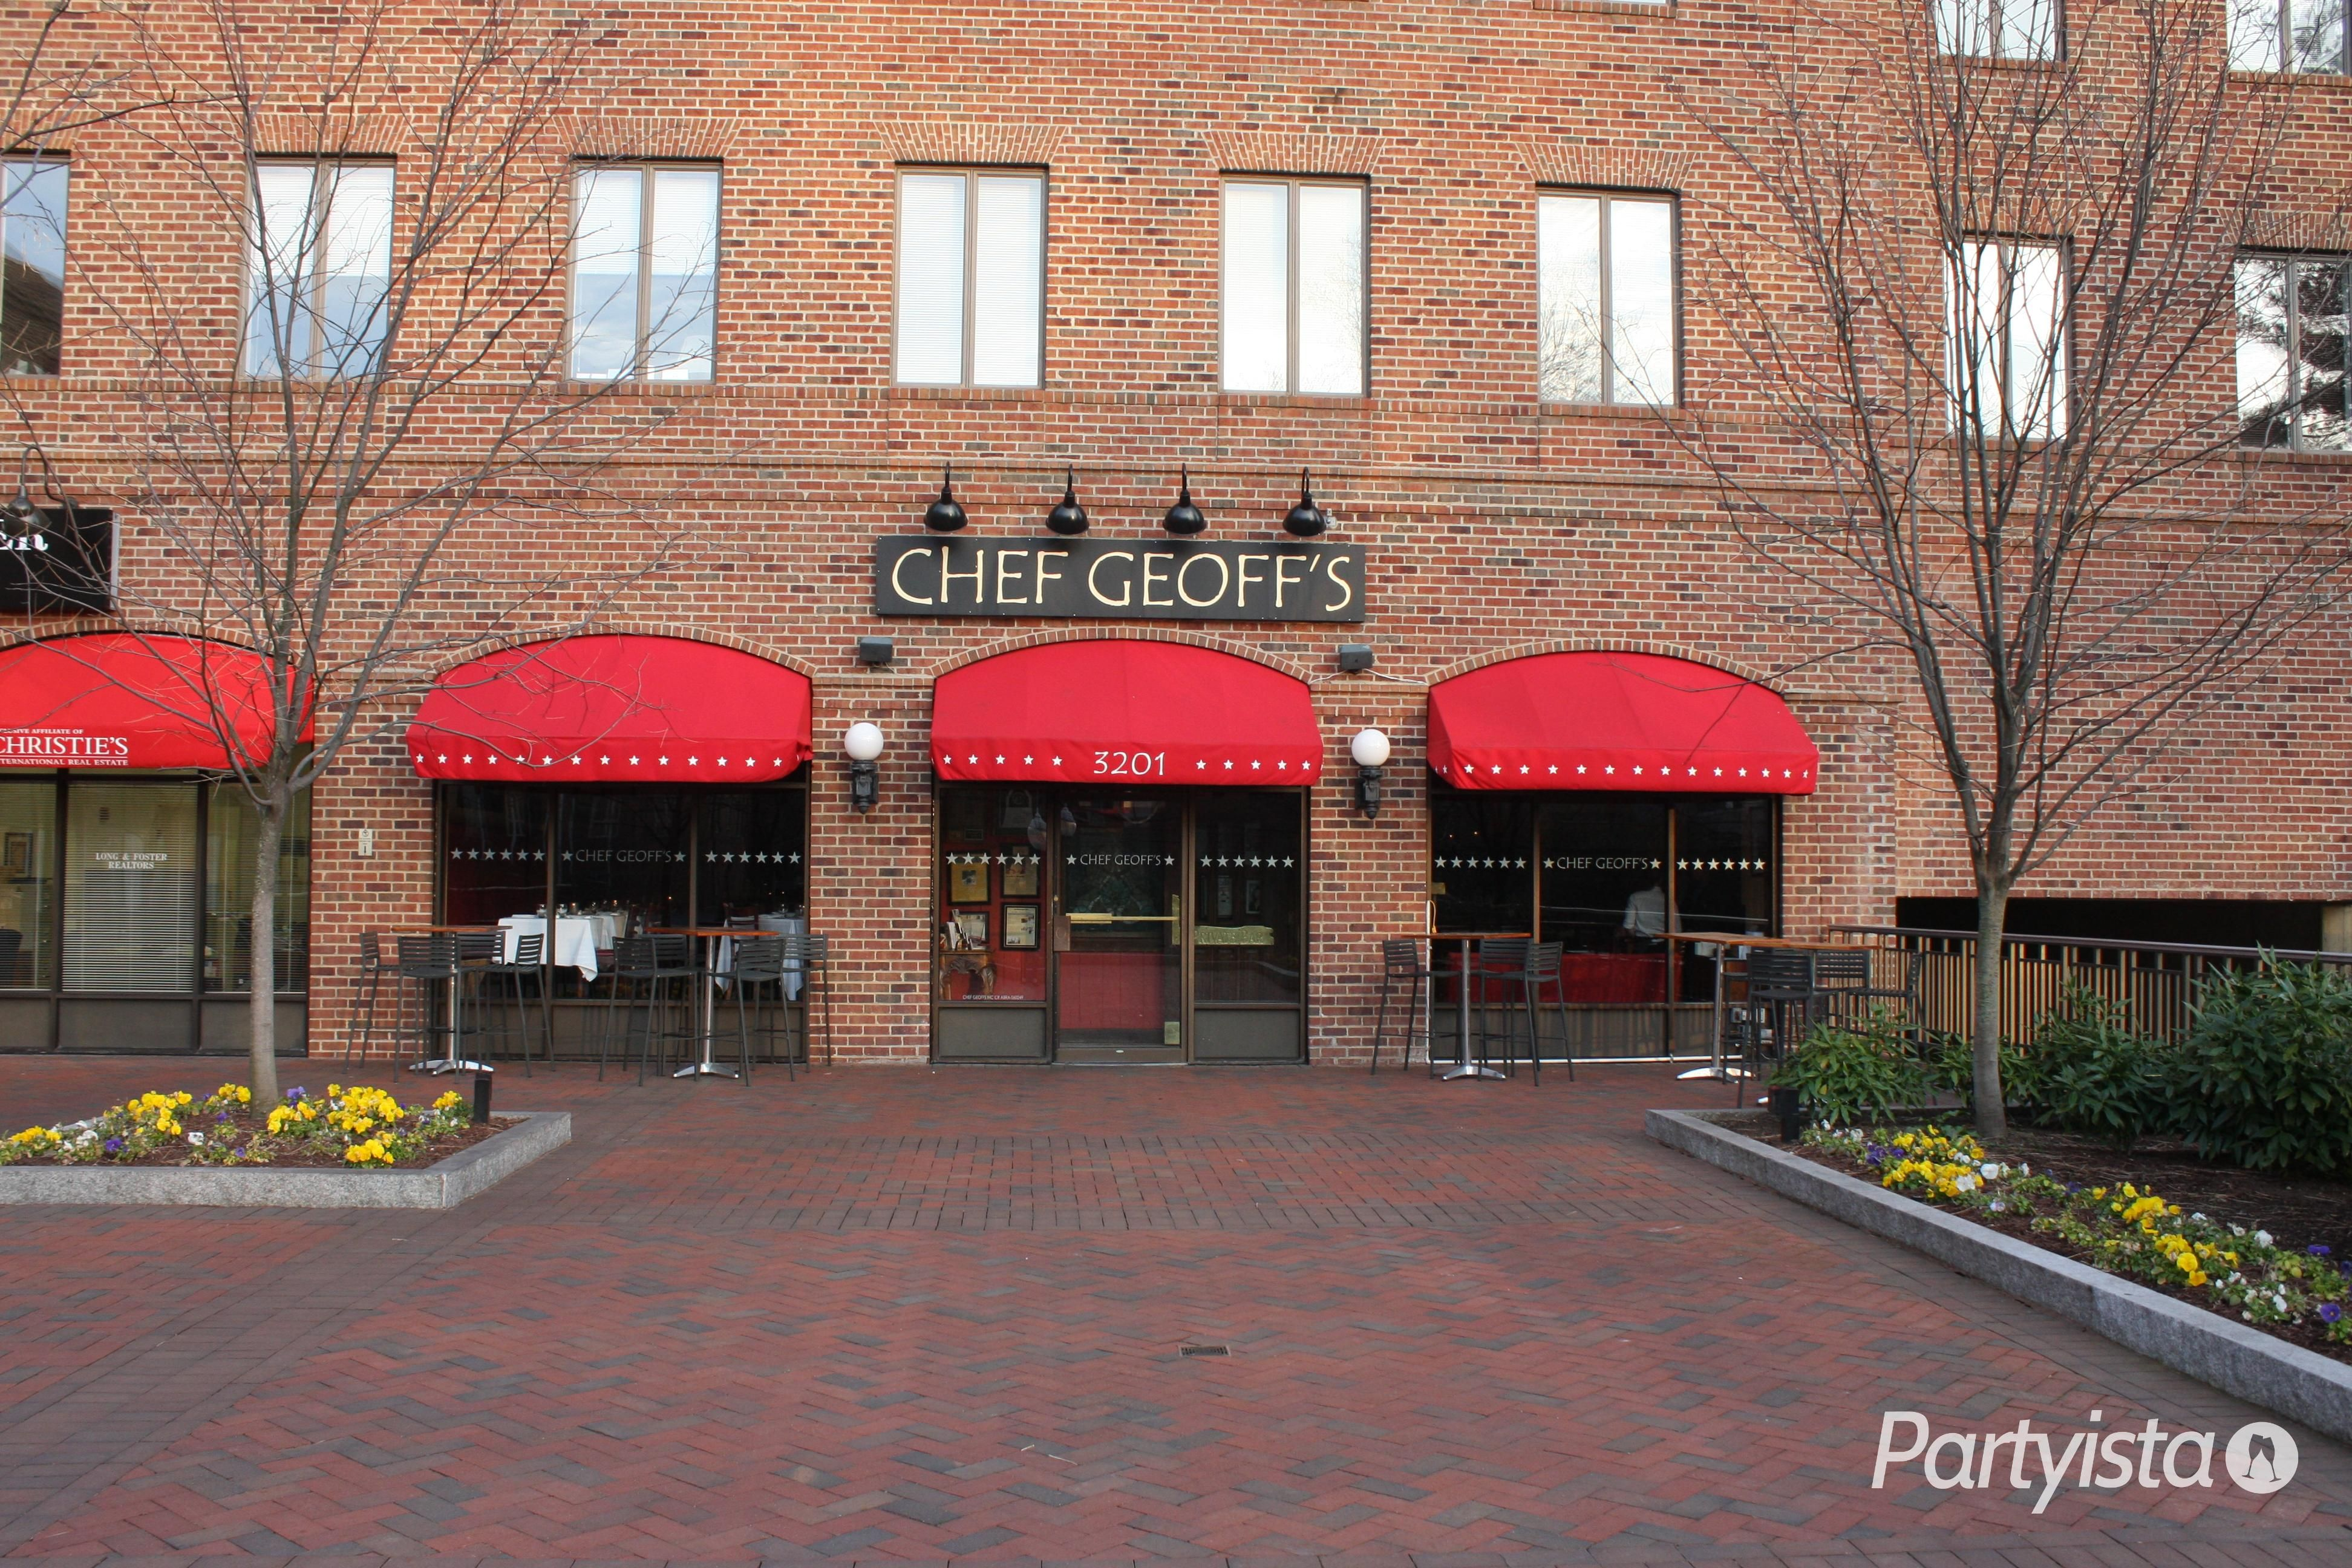 Chef Geoff's   A private room in the back could host a great Washington, DC wedding   www.partyista.com